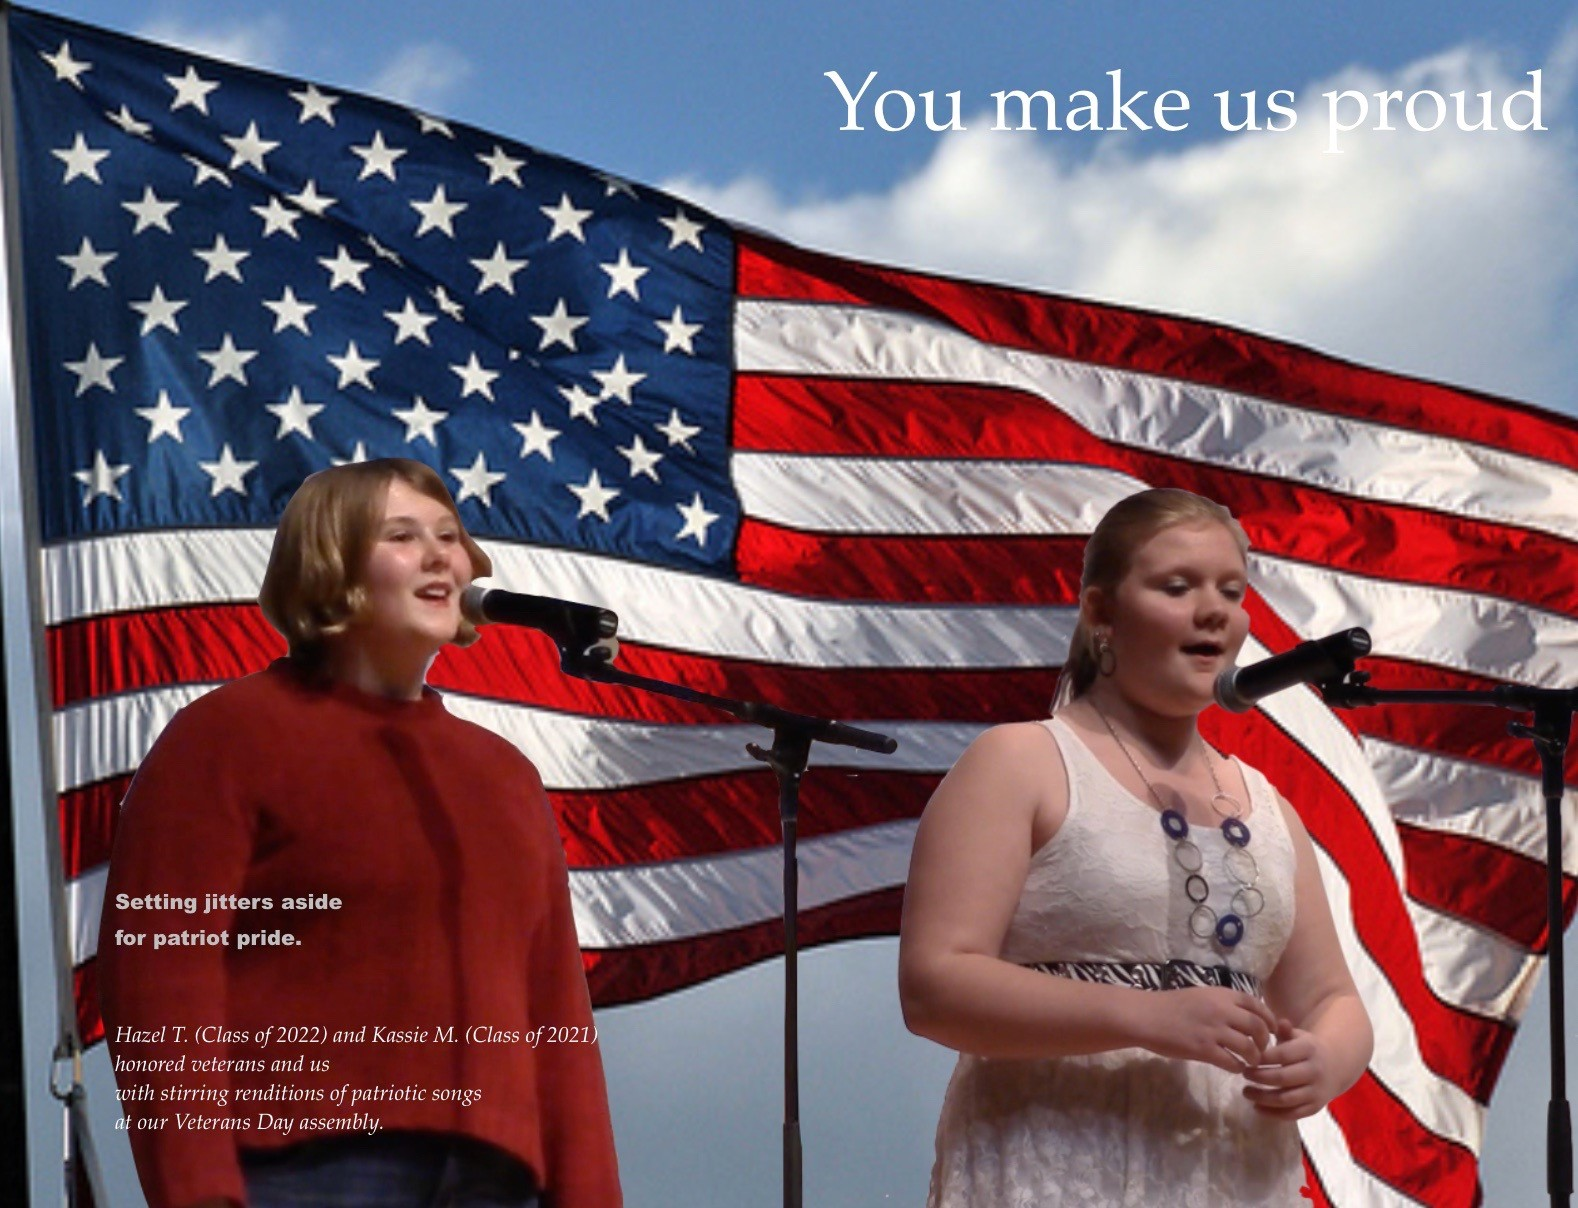 ACSLIB Poster: Two student vocalists against backdrop of the flag.